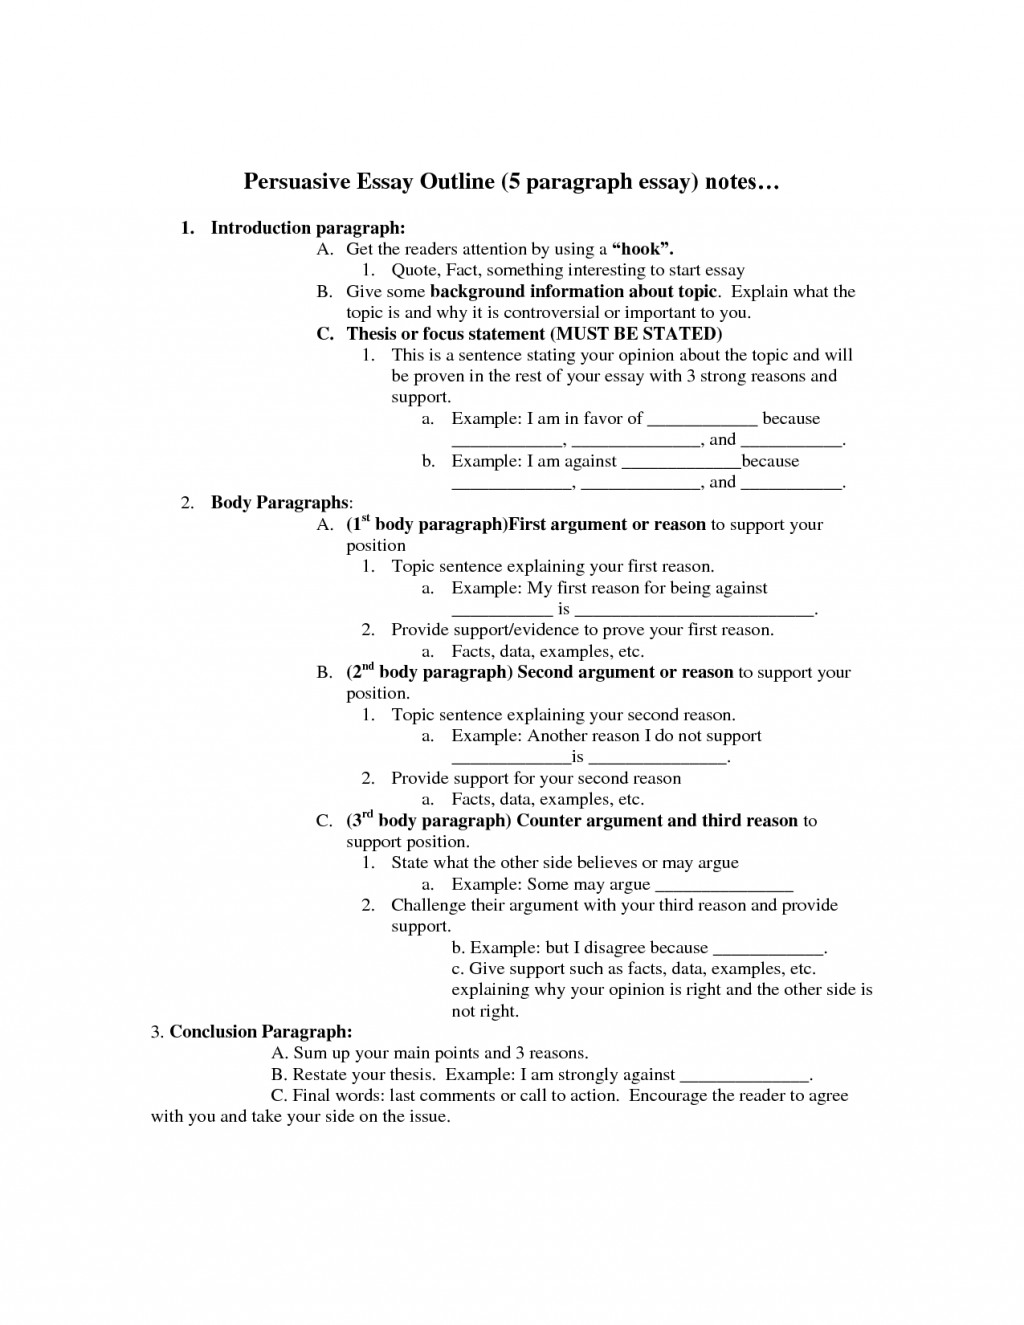 006 Persuasive Essay Outline Unbelievable Worksheet Paper Examples Template 5th Grade Large